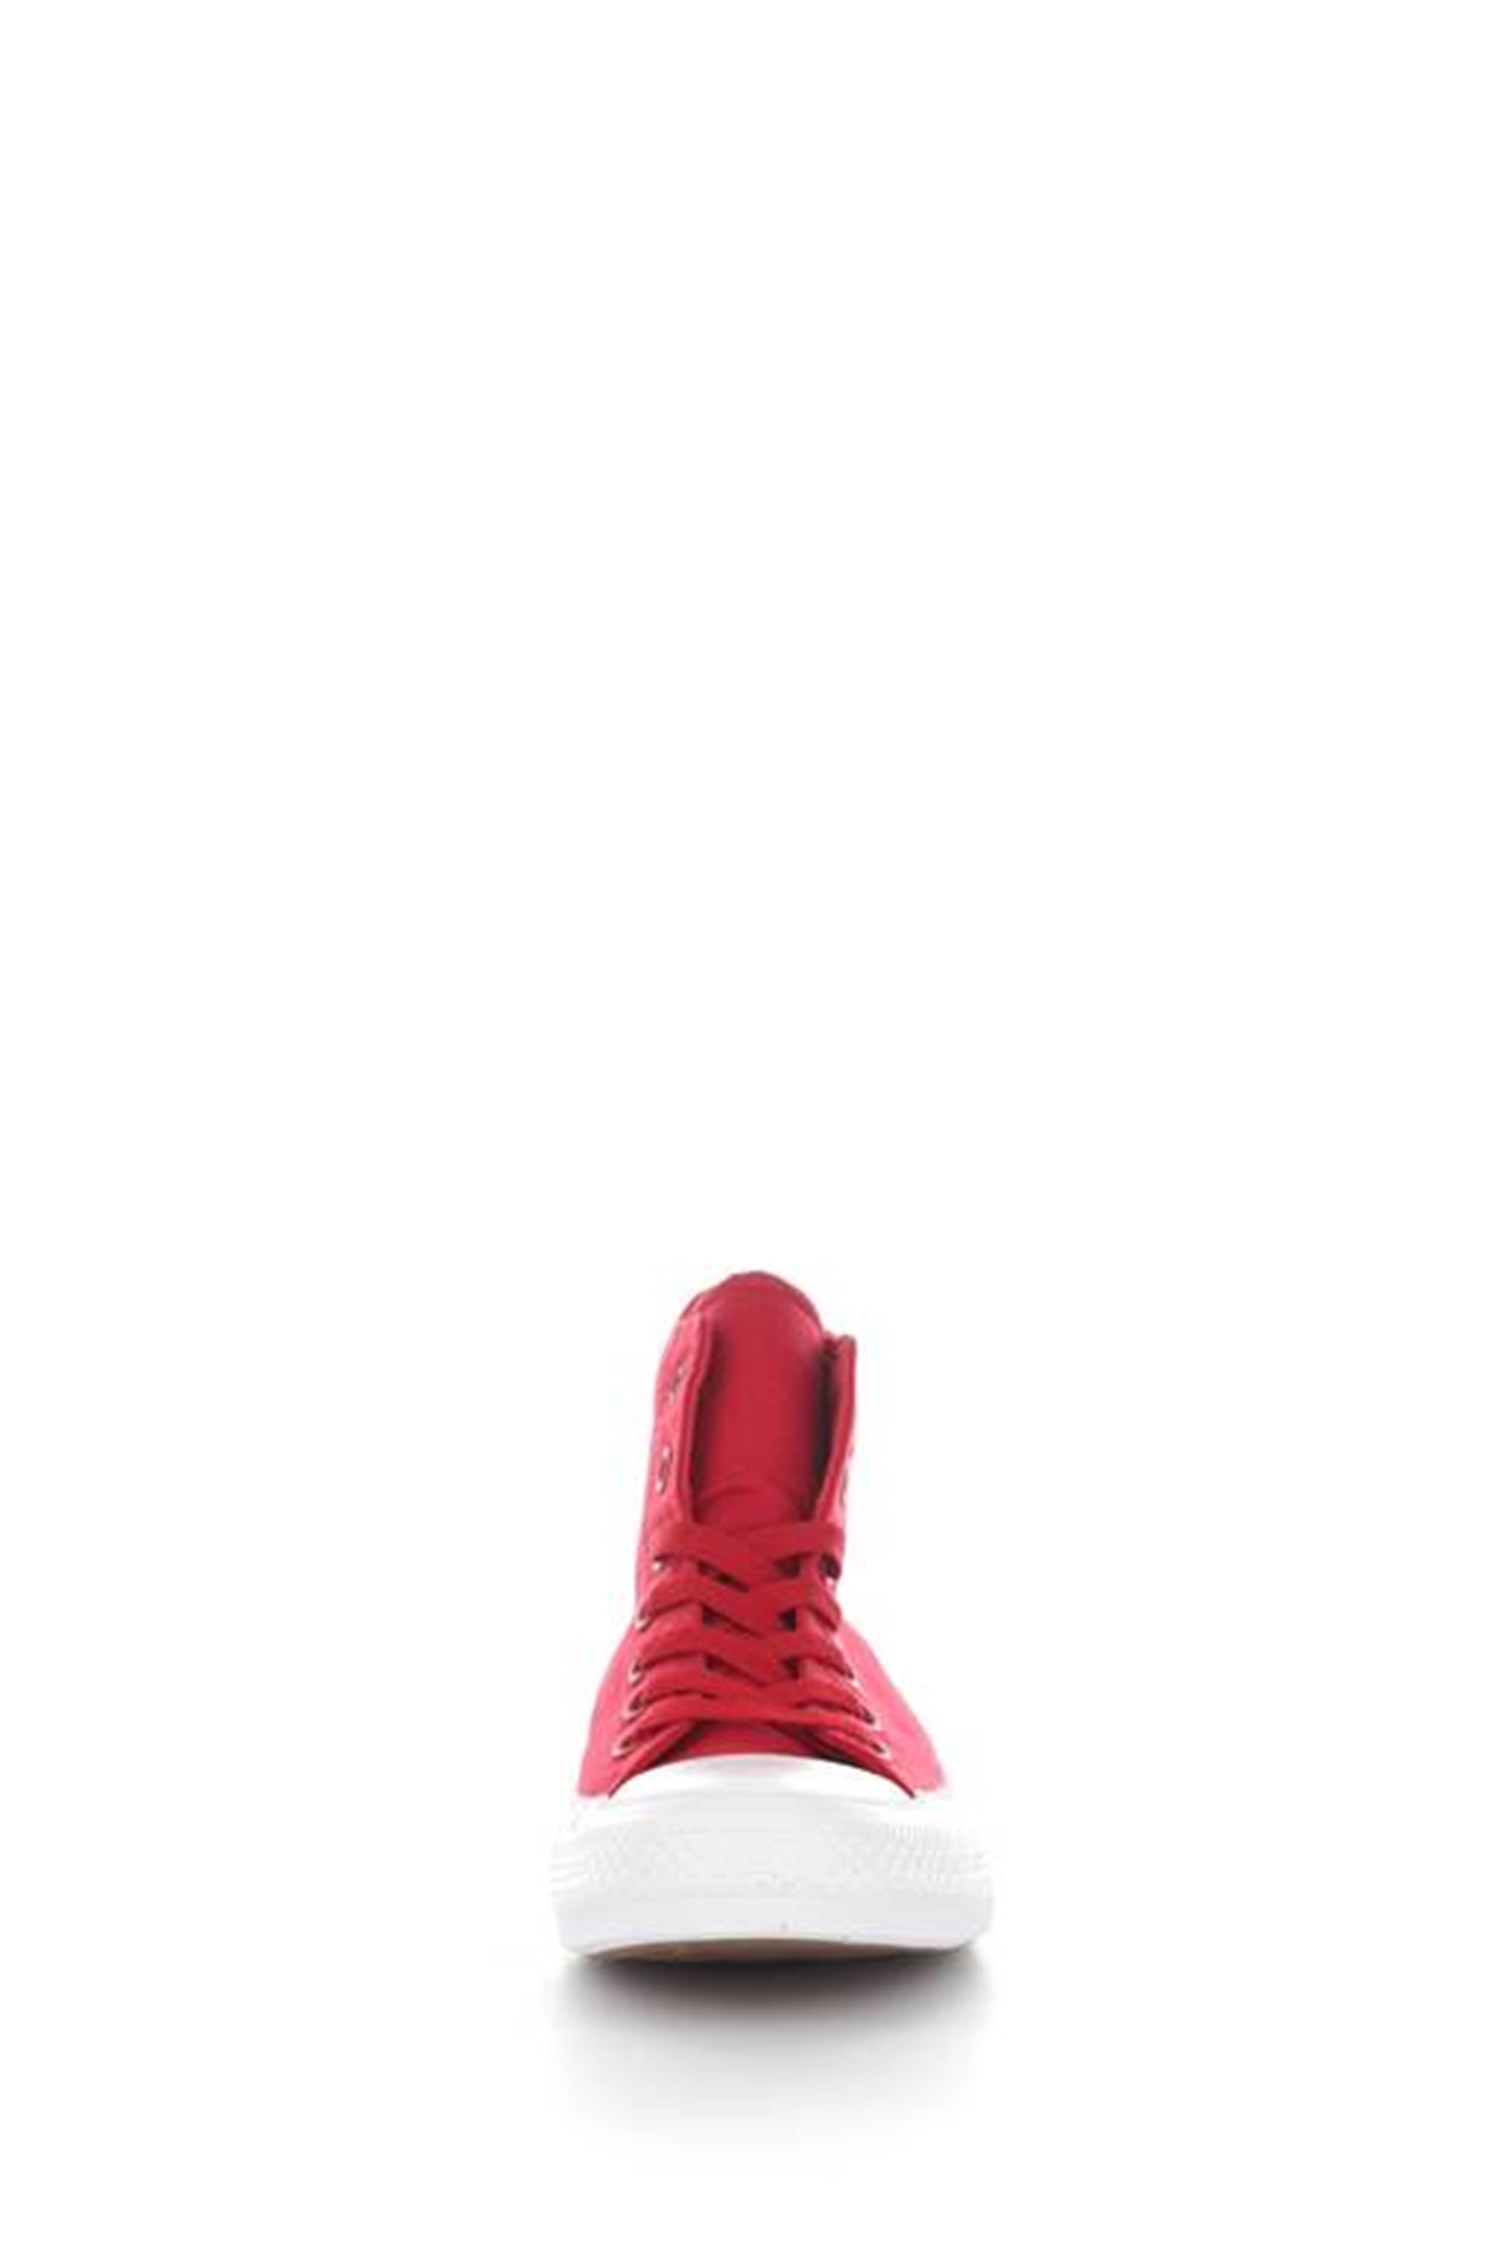 Converse Shoes Man high RED 150145C